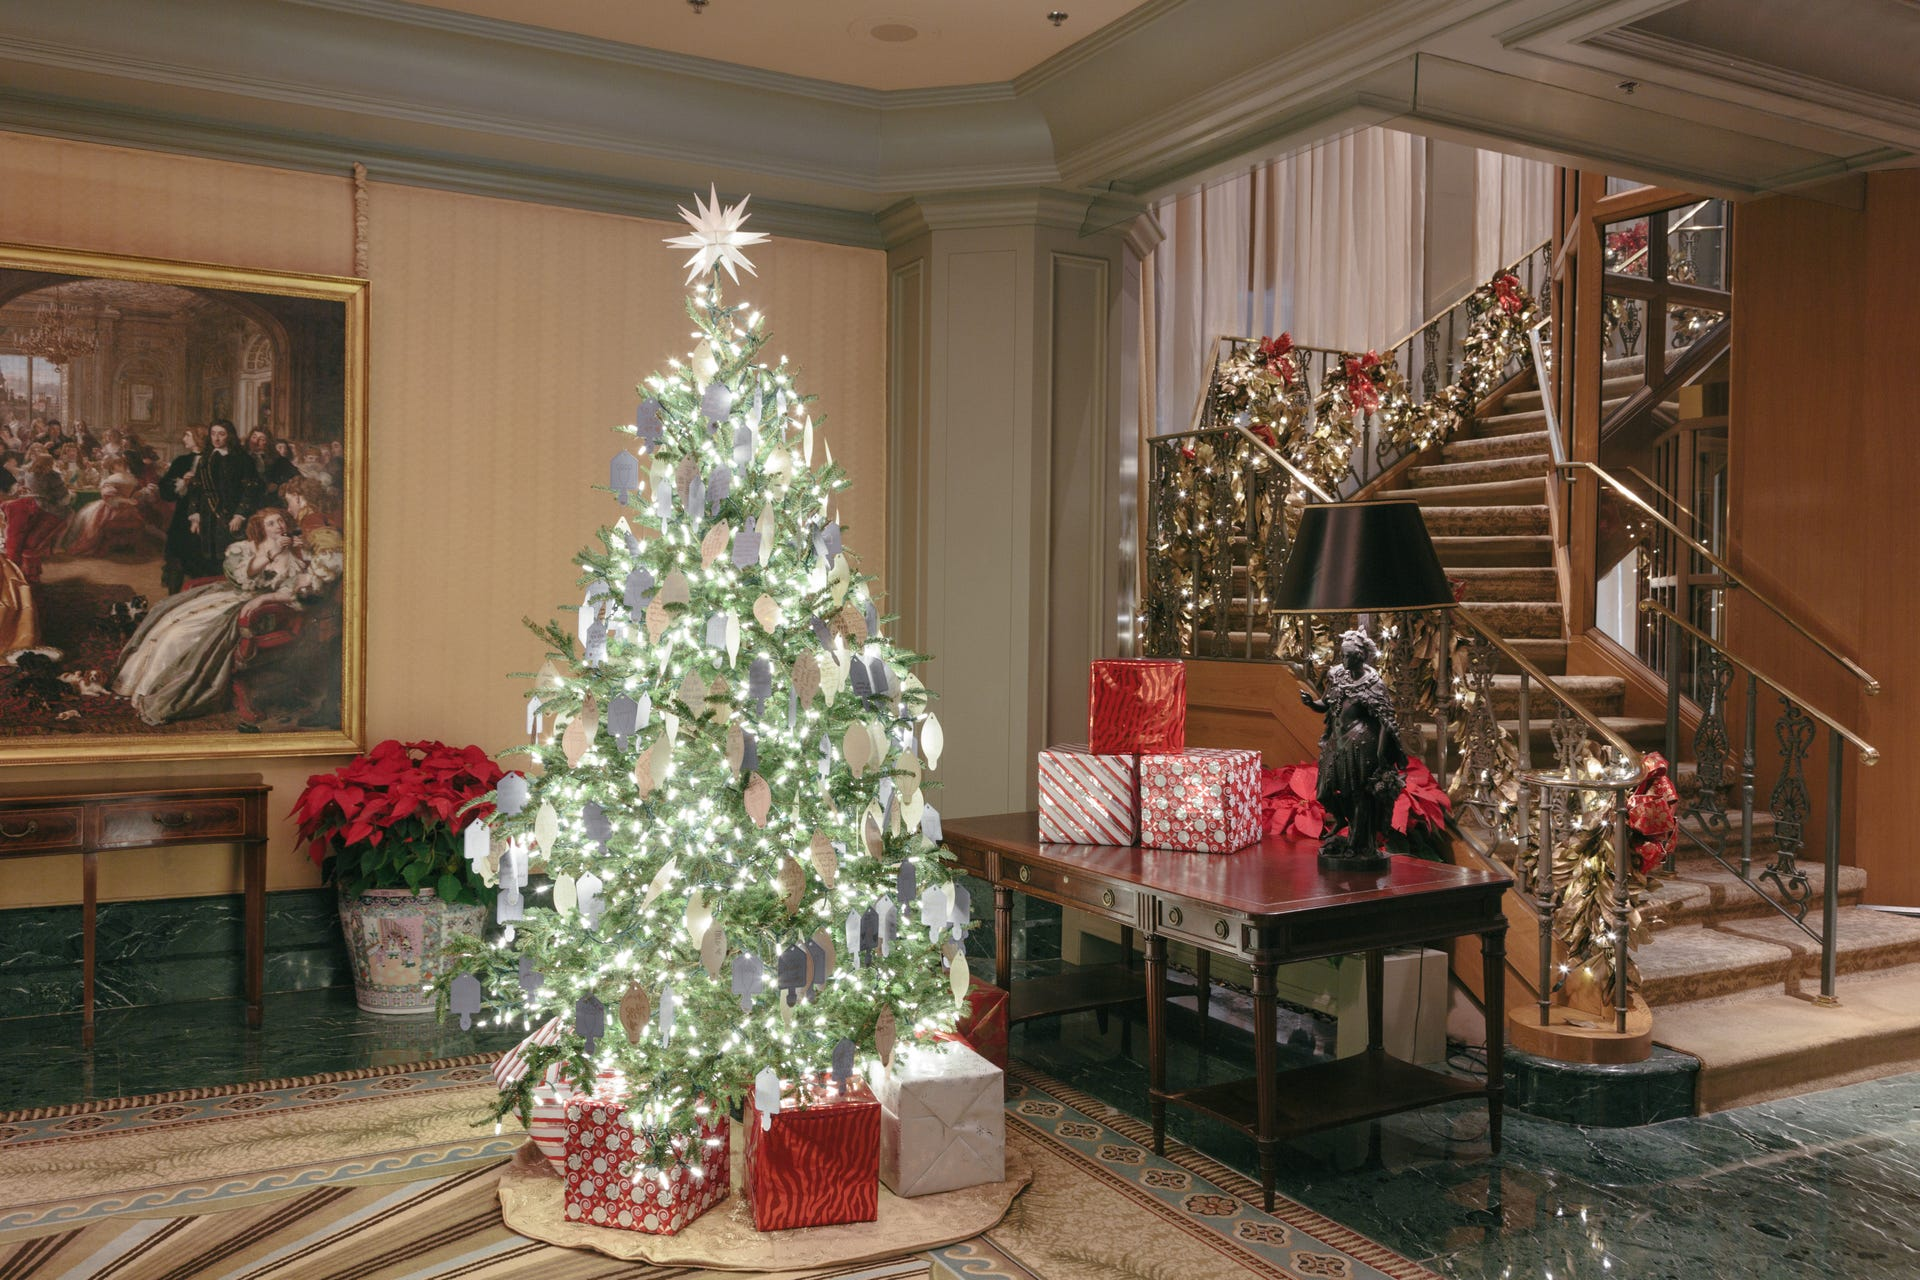 Hotels lobbies are decorated for the holidays